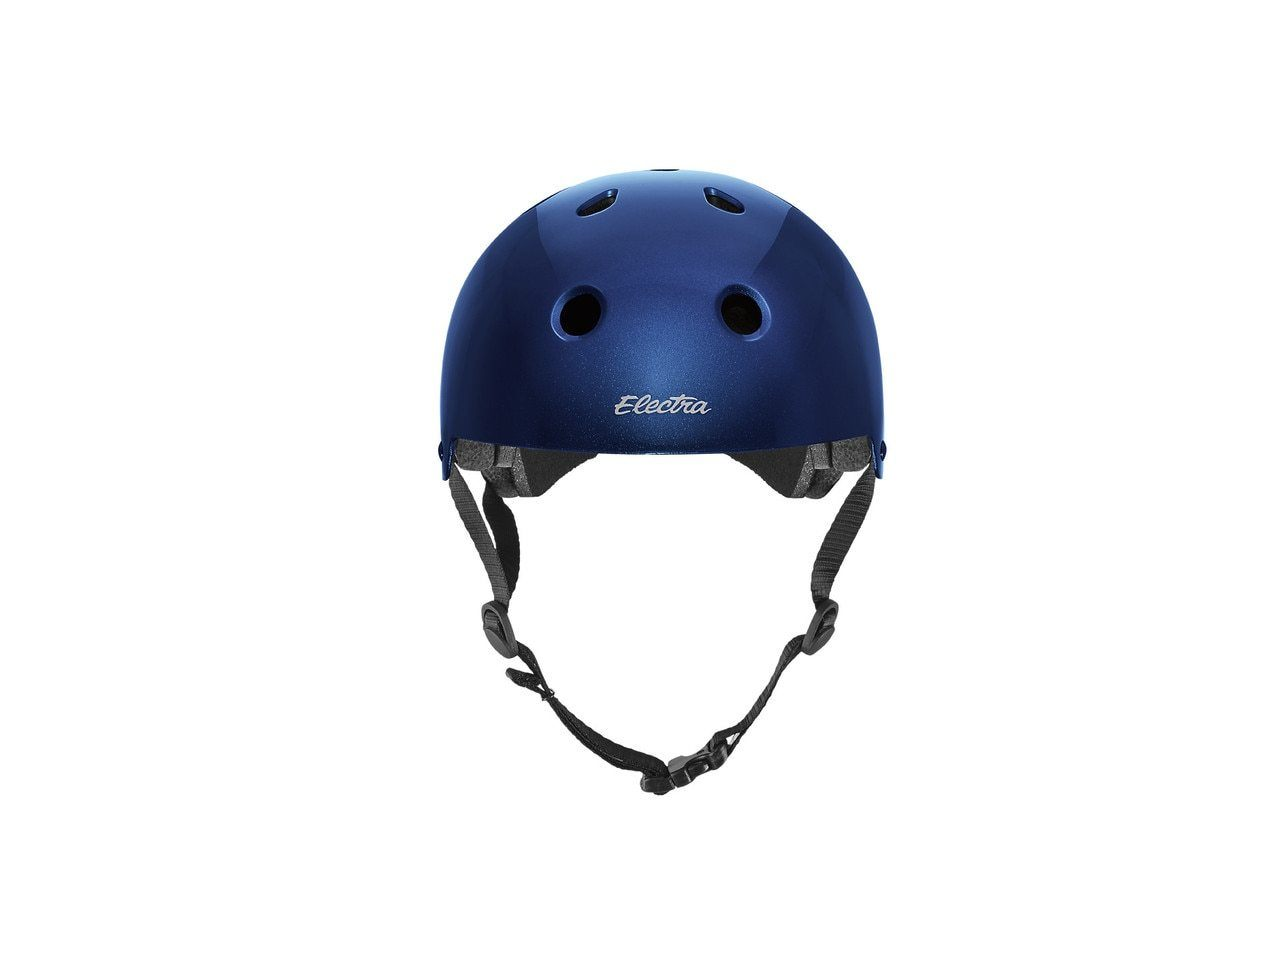 Electra Lifestyle Helmet Oxford Blue - large